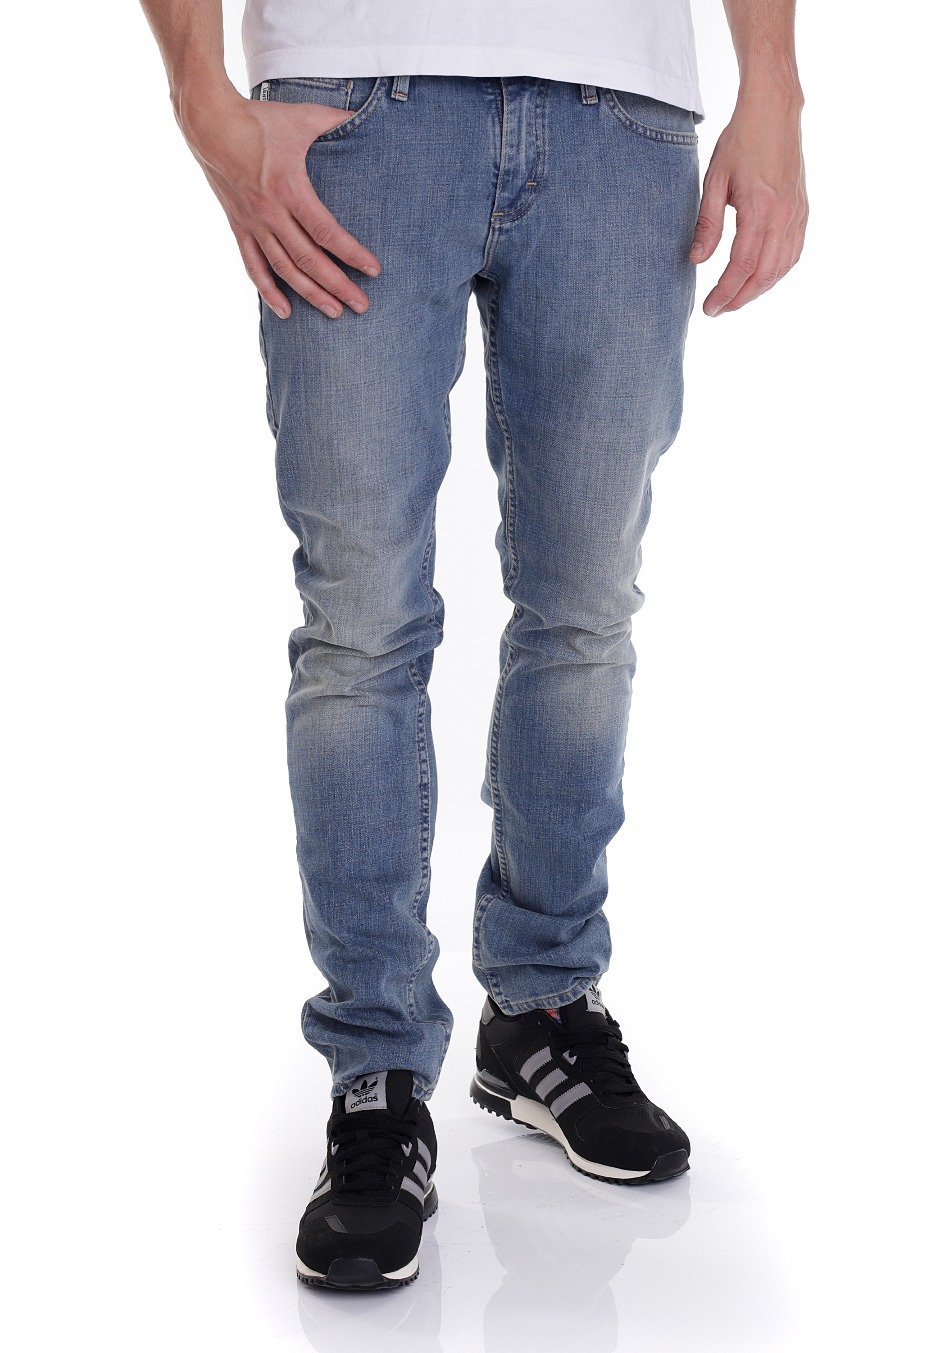 25e112f741c84 Vans - V76 Skinny Vintage Indigo Light - Jeans - Impericon.com Worldwide